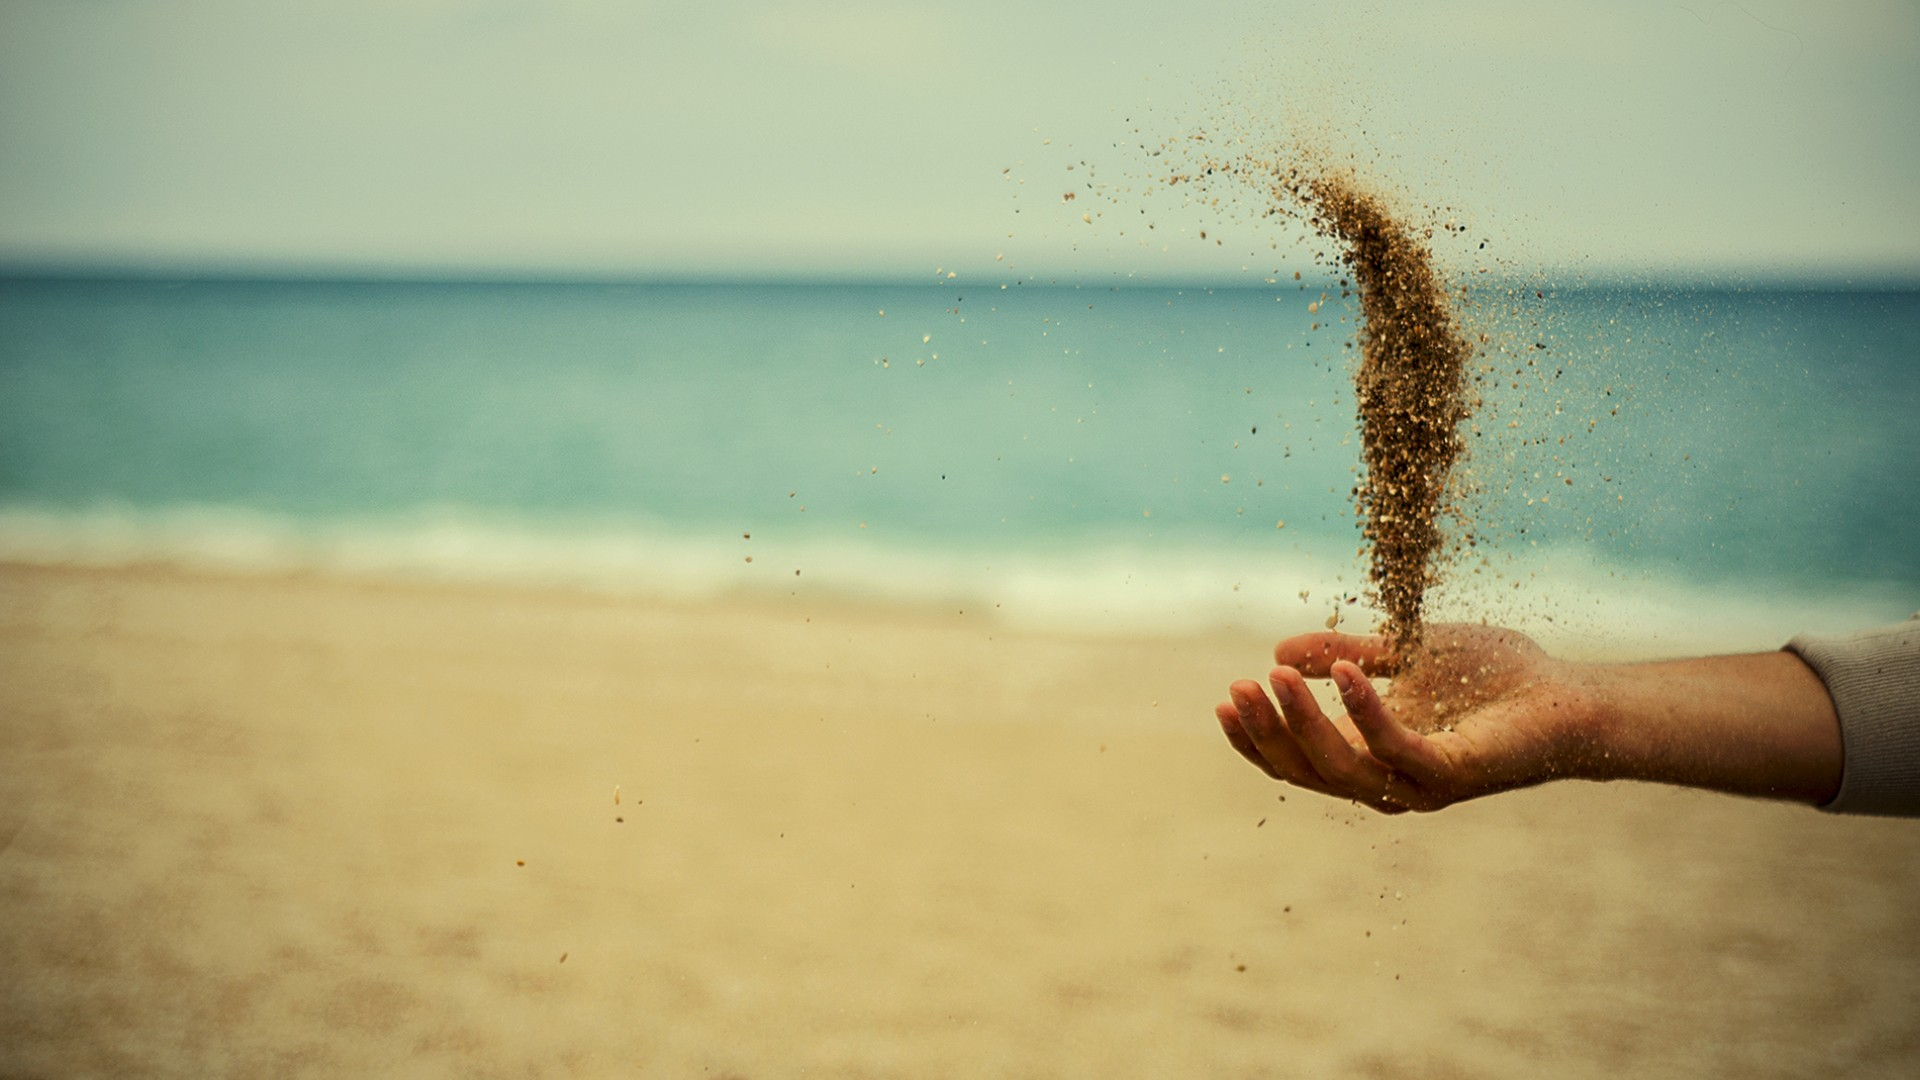 Flying Sand Wallpaper